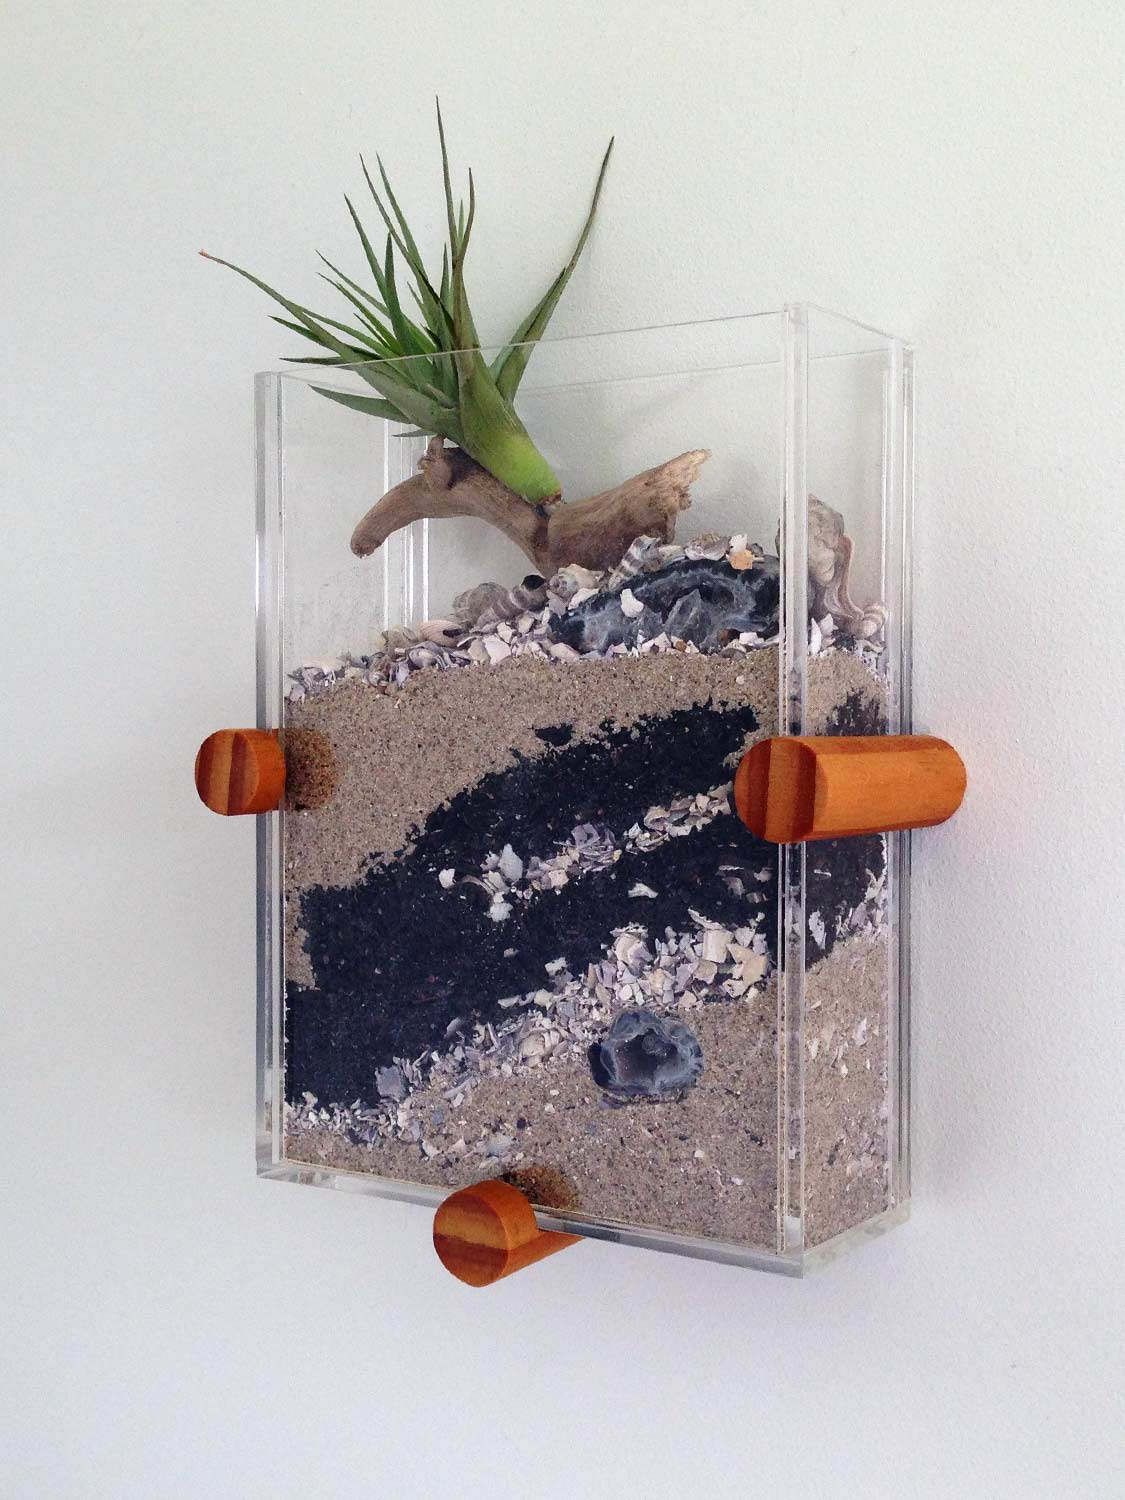 Wall mounted terrarium with air plant